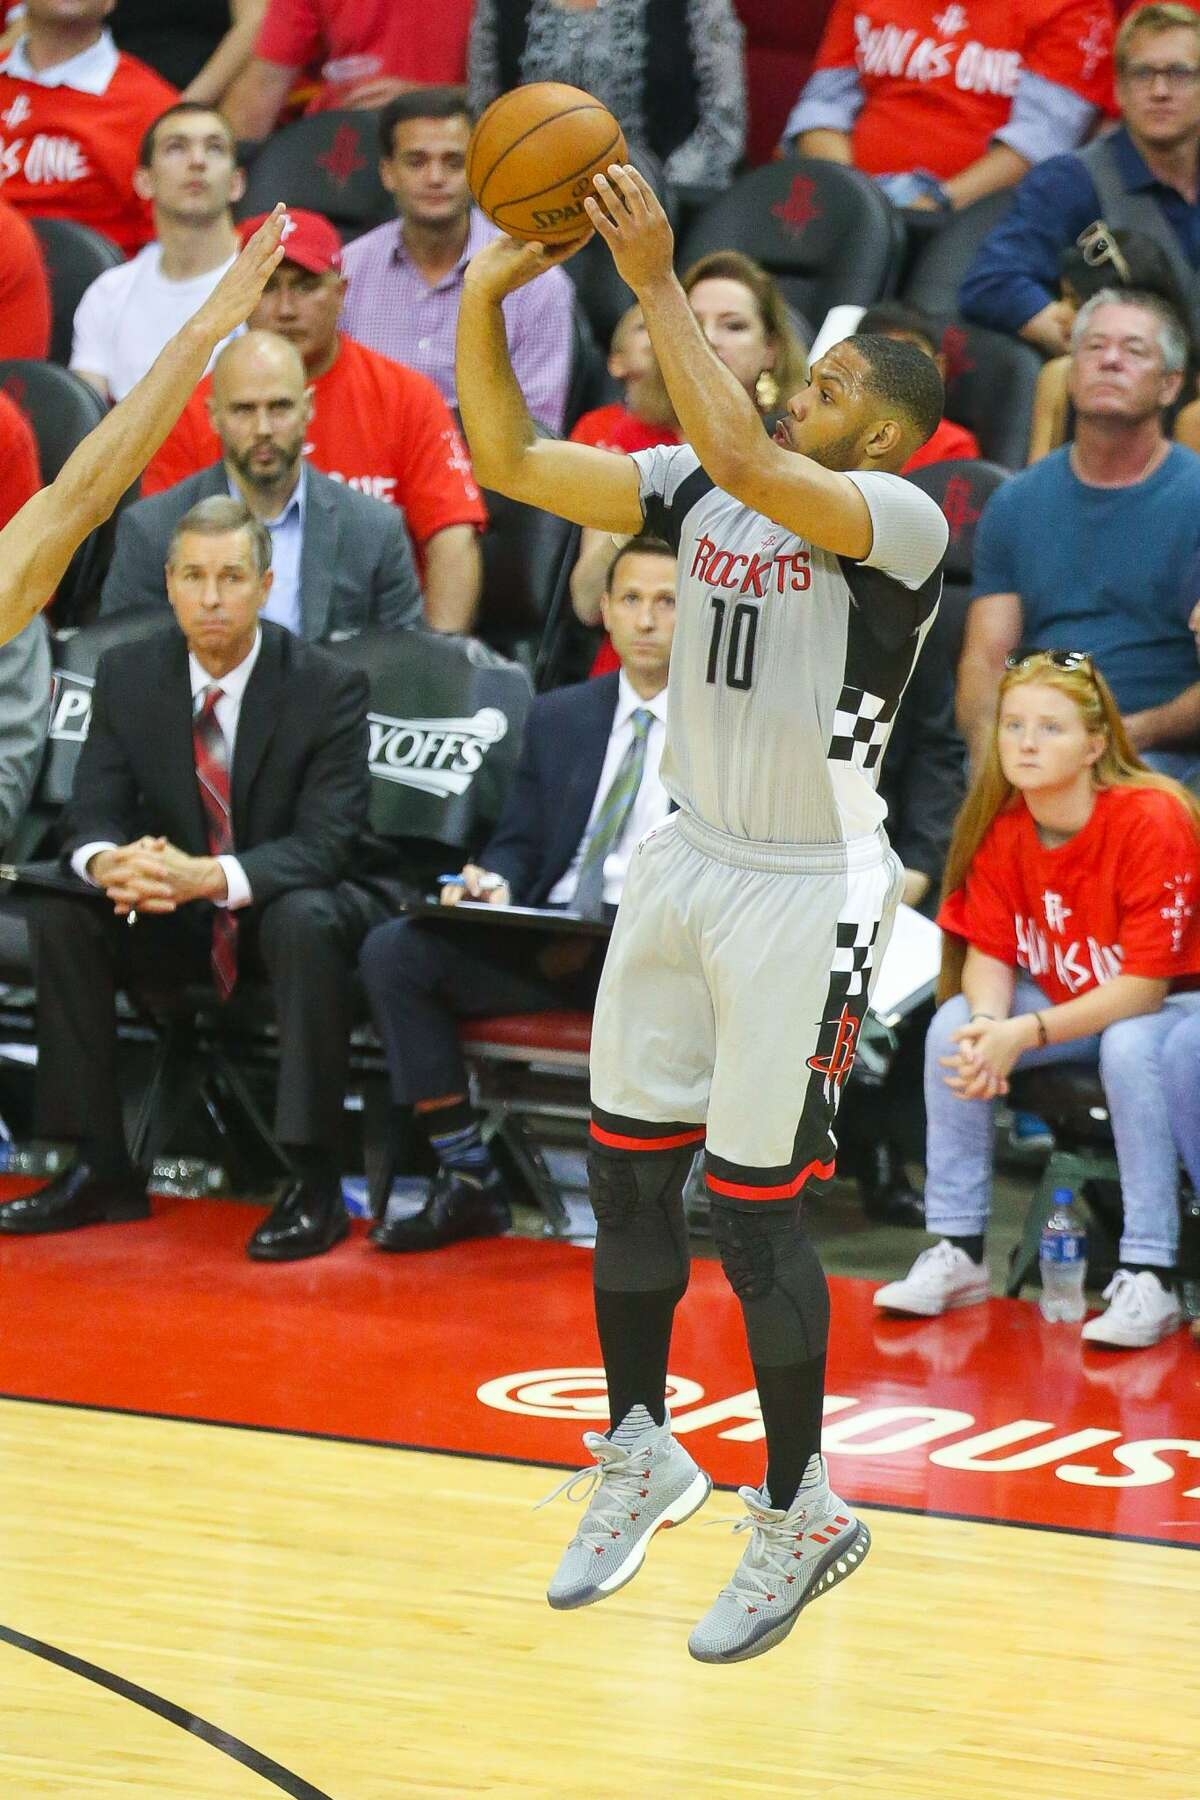 Houston Rockets guard Eric Gordon (10) shoots a three point shot during the second half of Game 6 of the Western Conference semi-final series between the Houston Rockets and San Antonio Spurs at Toyota Center, Thursday, May 11, 2017, in Houston. (Mark Mulligan / Houston Chronicle)